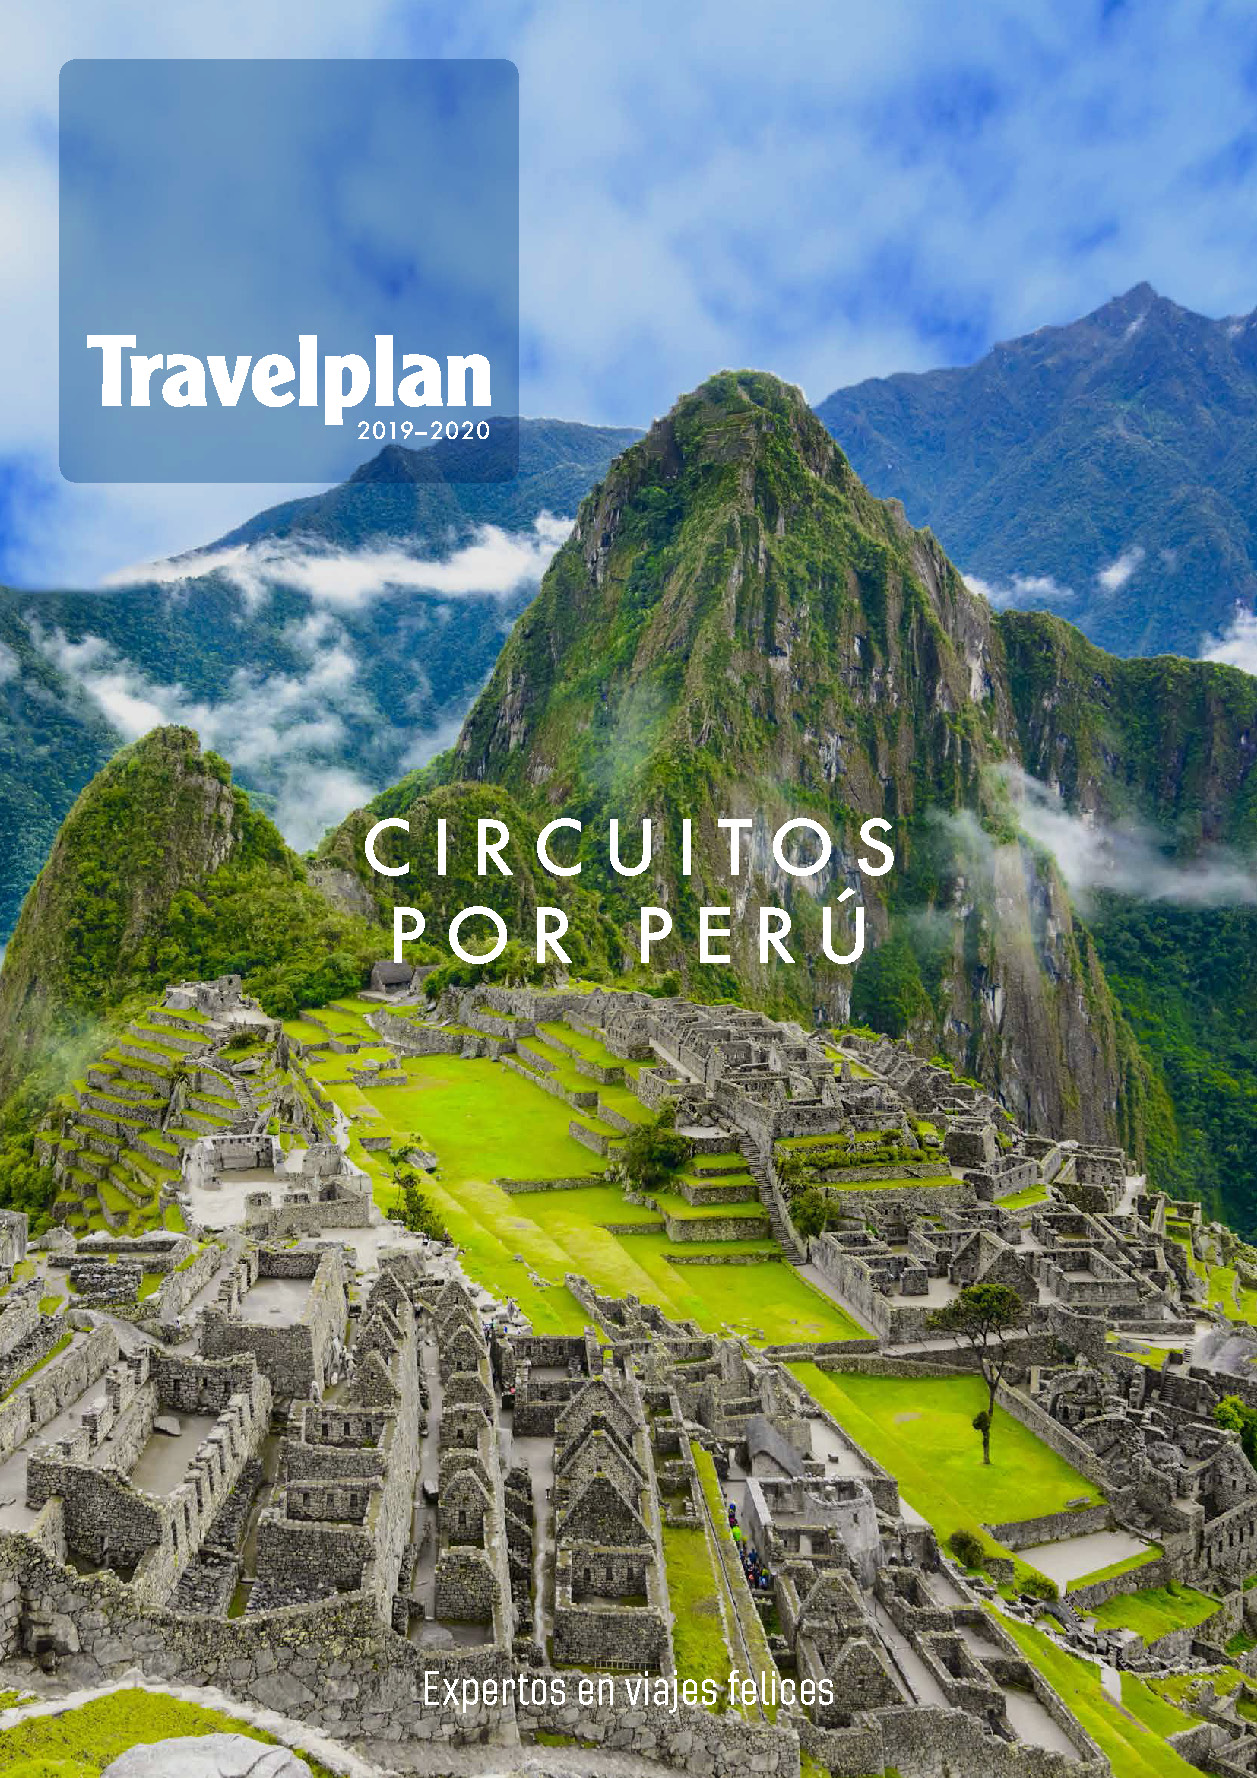 Catalogo Travelplan Peru 2019-2020